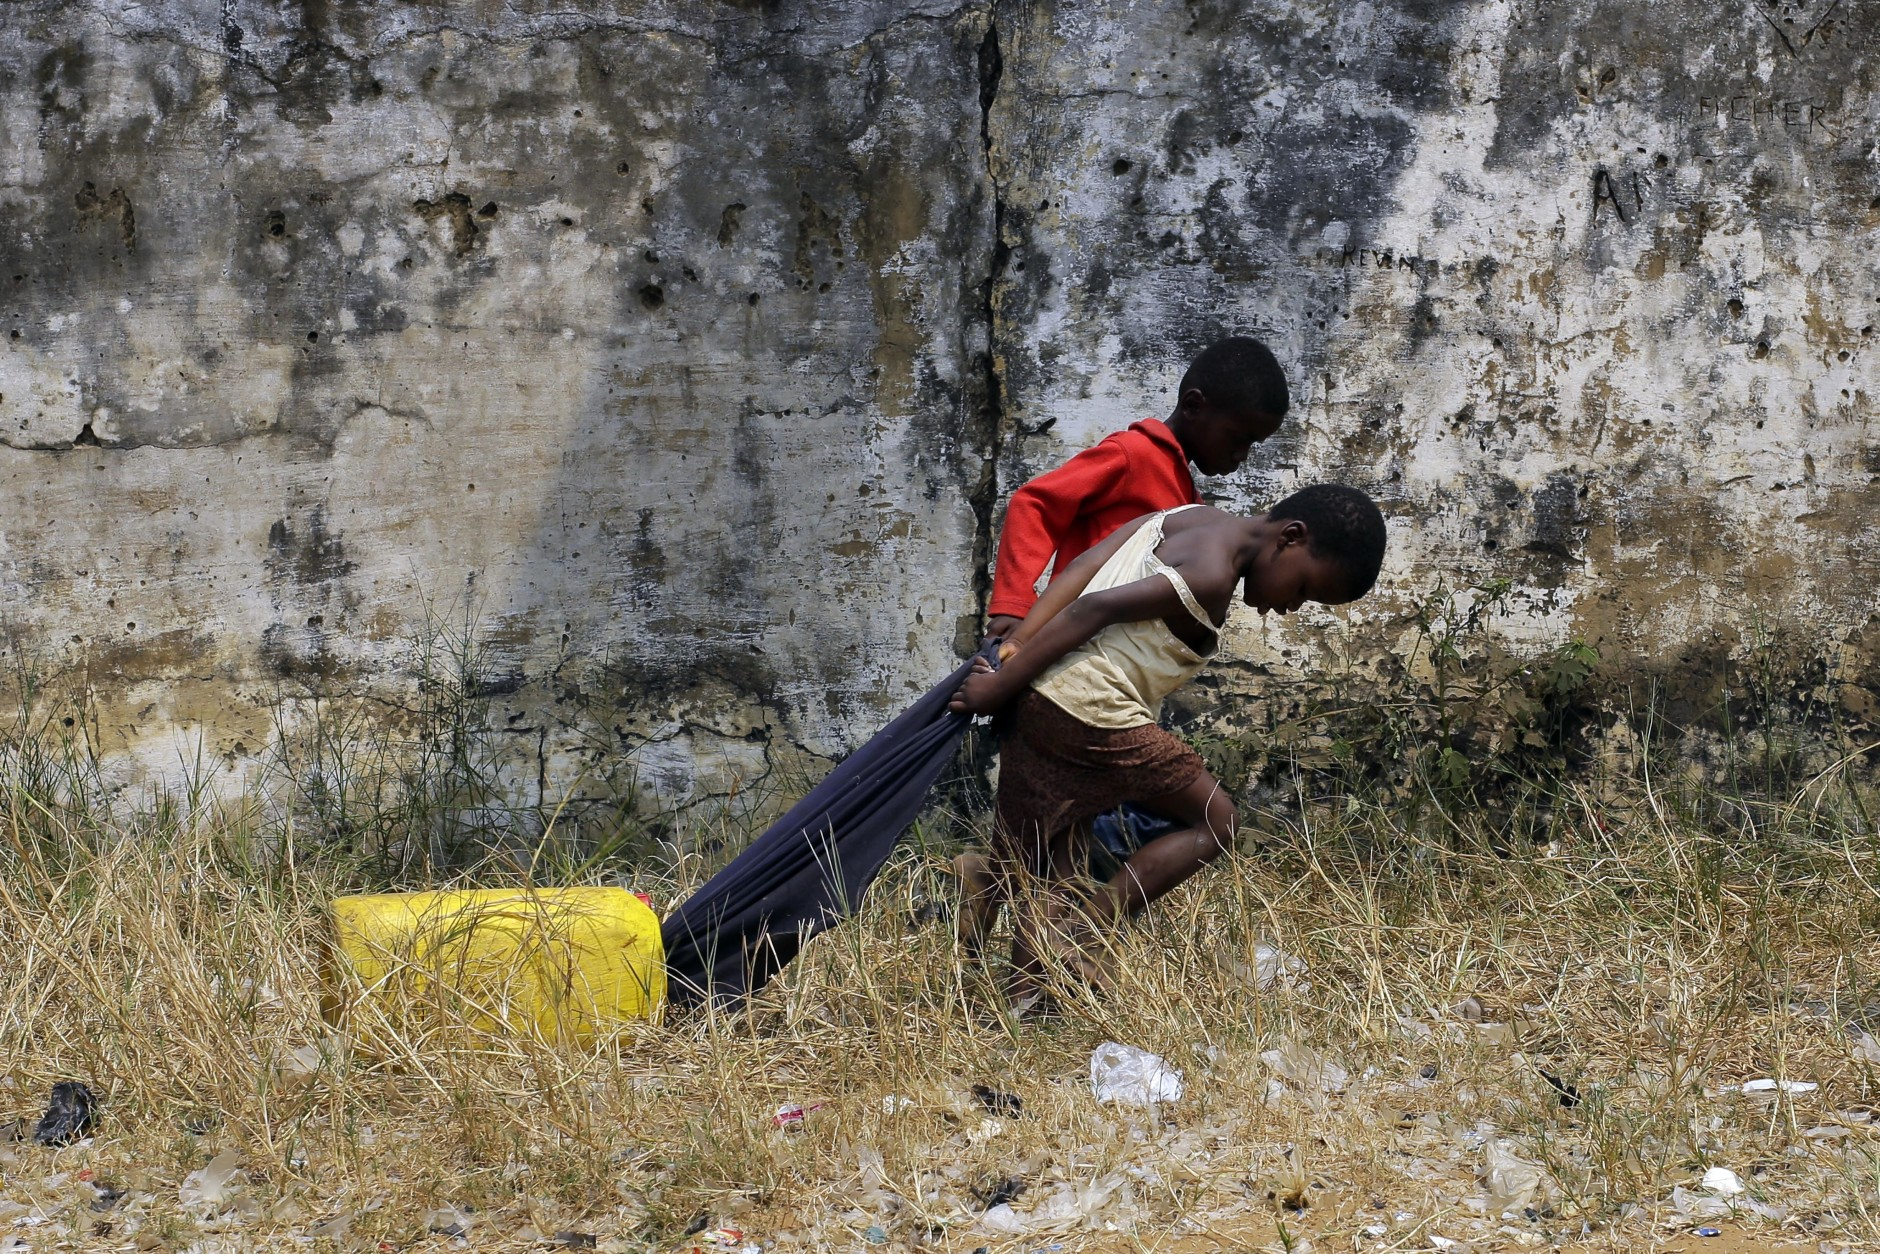 Children pull a container of water in the Kisenso district of Kinshasa, Congo, on Wednesday, July 20, 2016. There is much uncertainty about the control of yellow fever in Congo, where a surge of cases could spark further waves of the epidemic. (AP Photo/Jerome Delay)